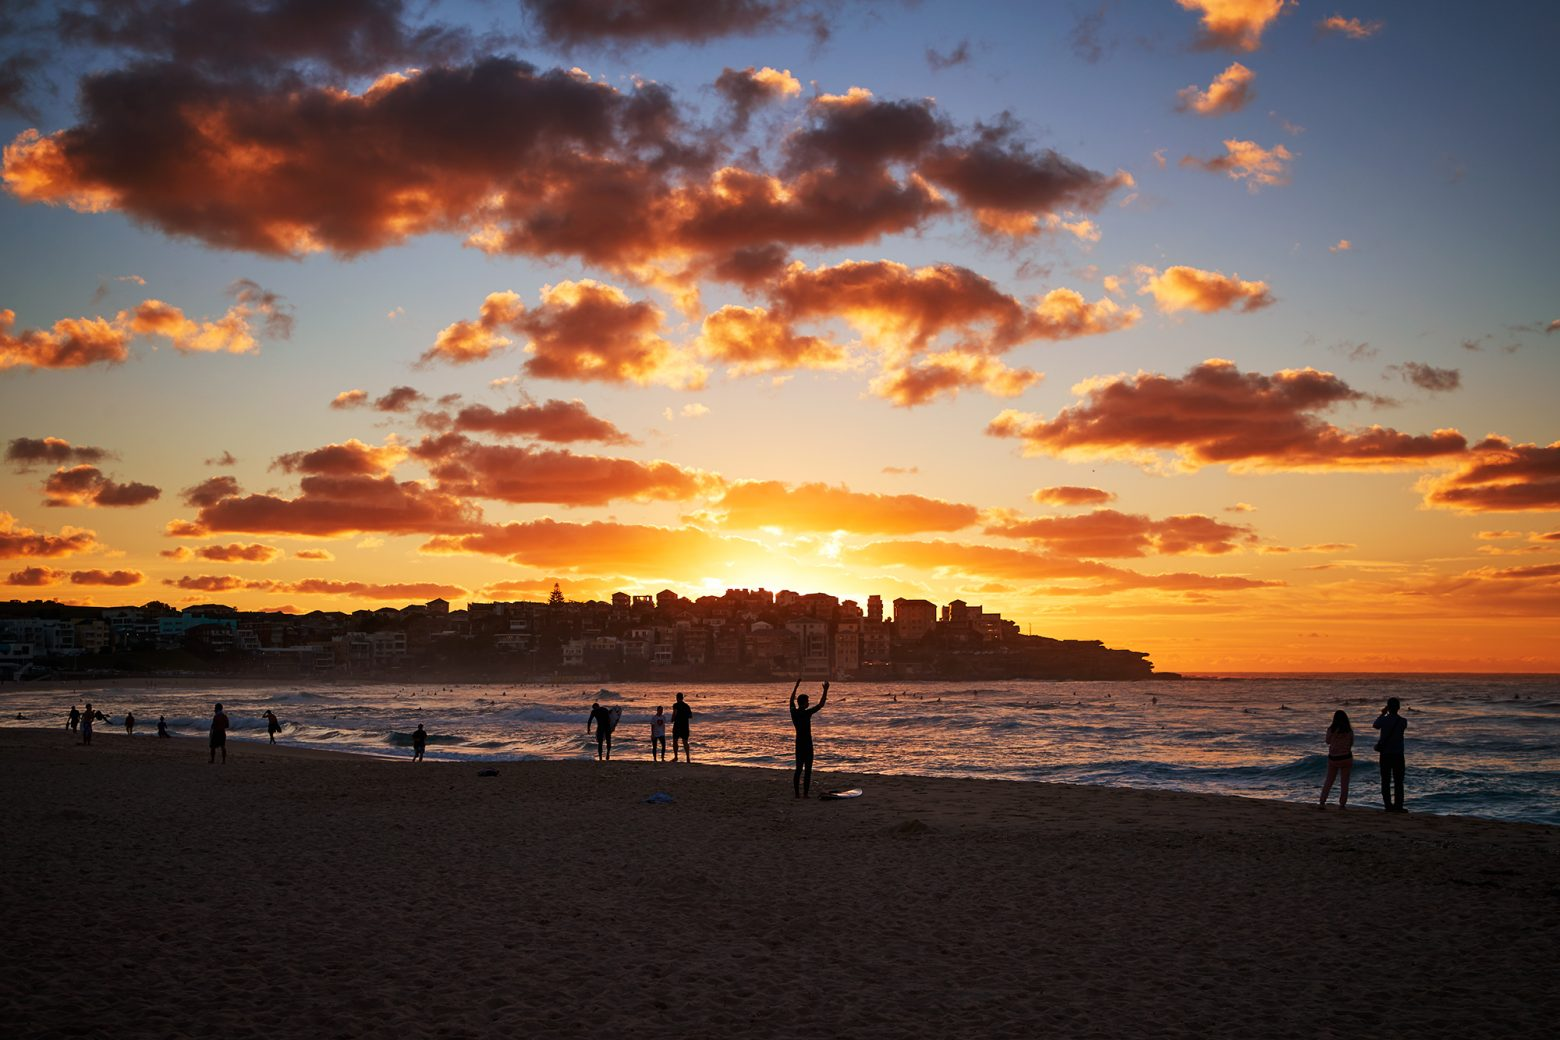 Good morning, Bondi